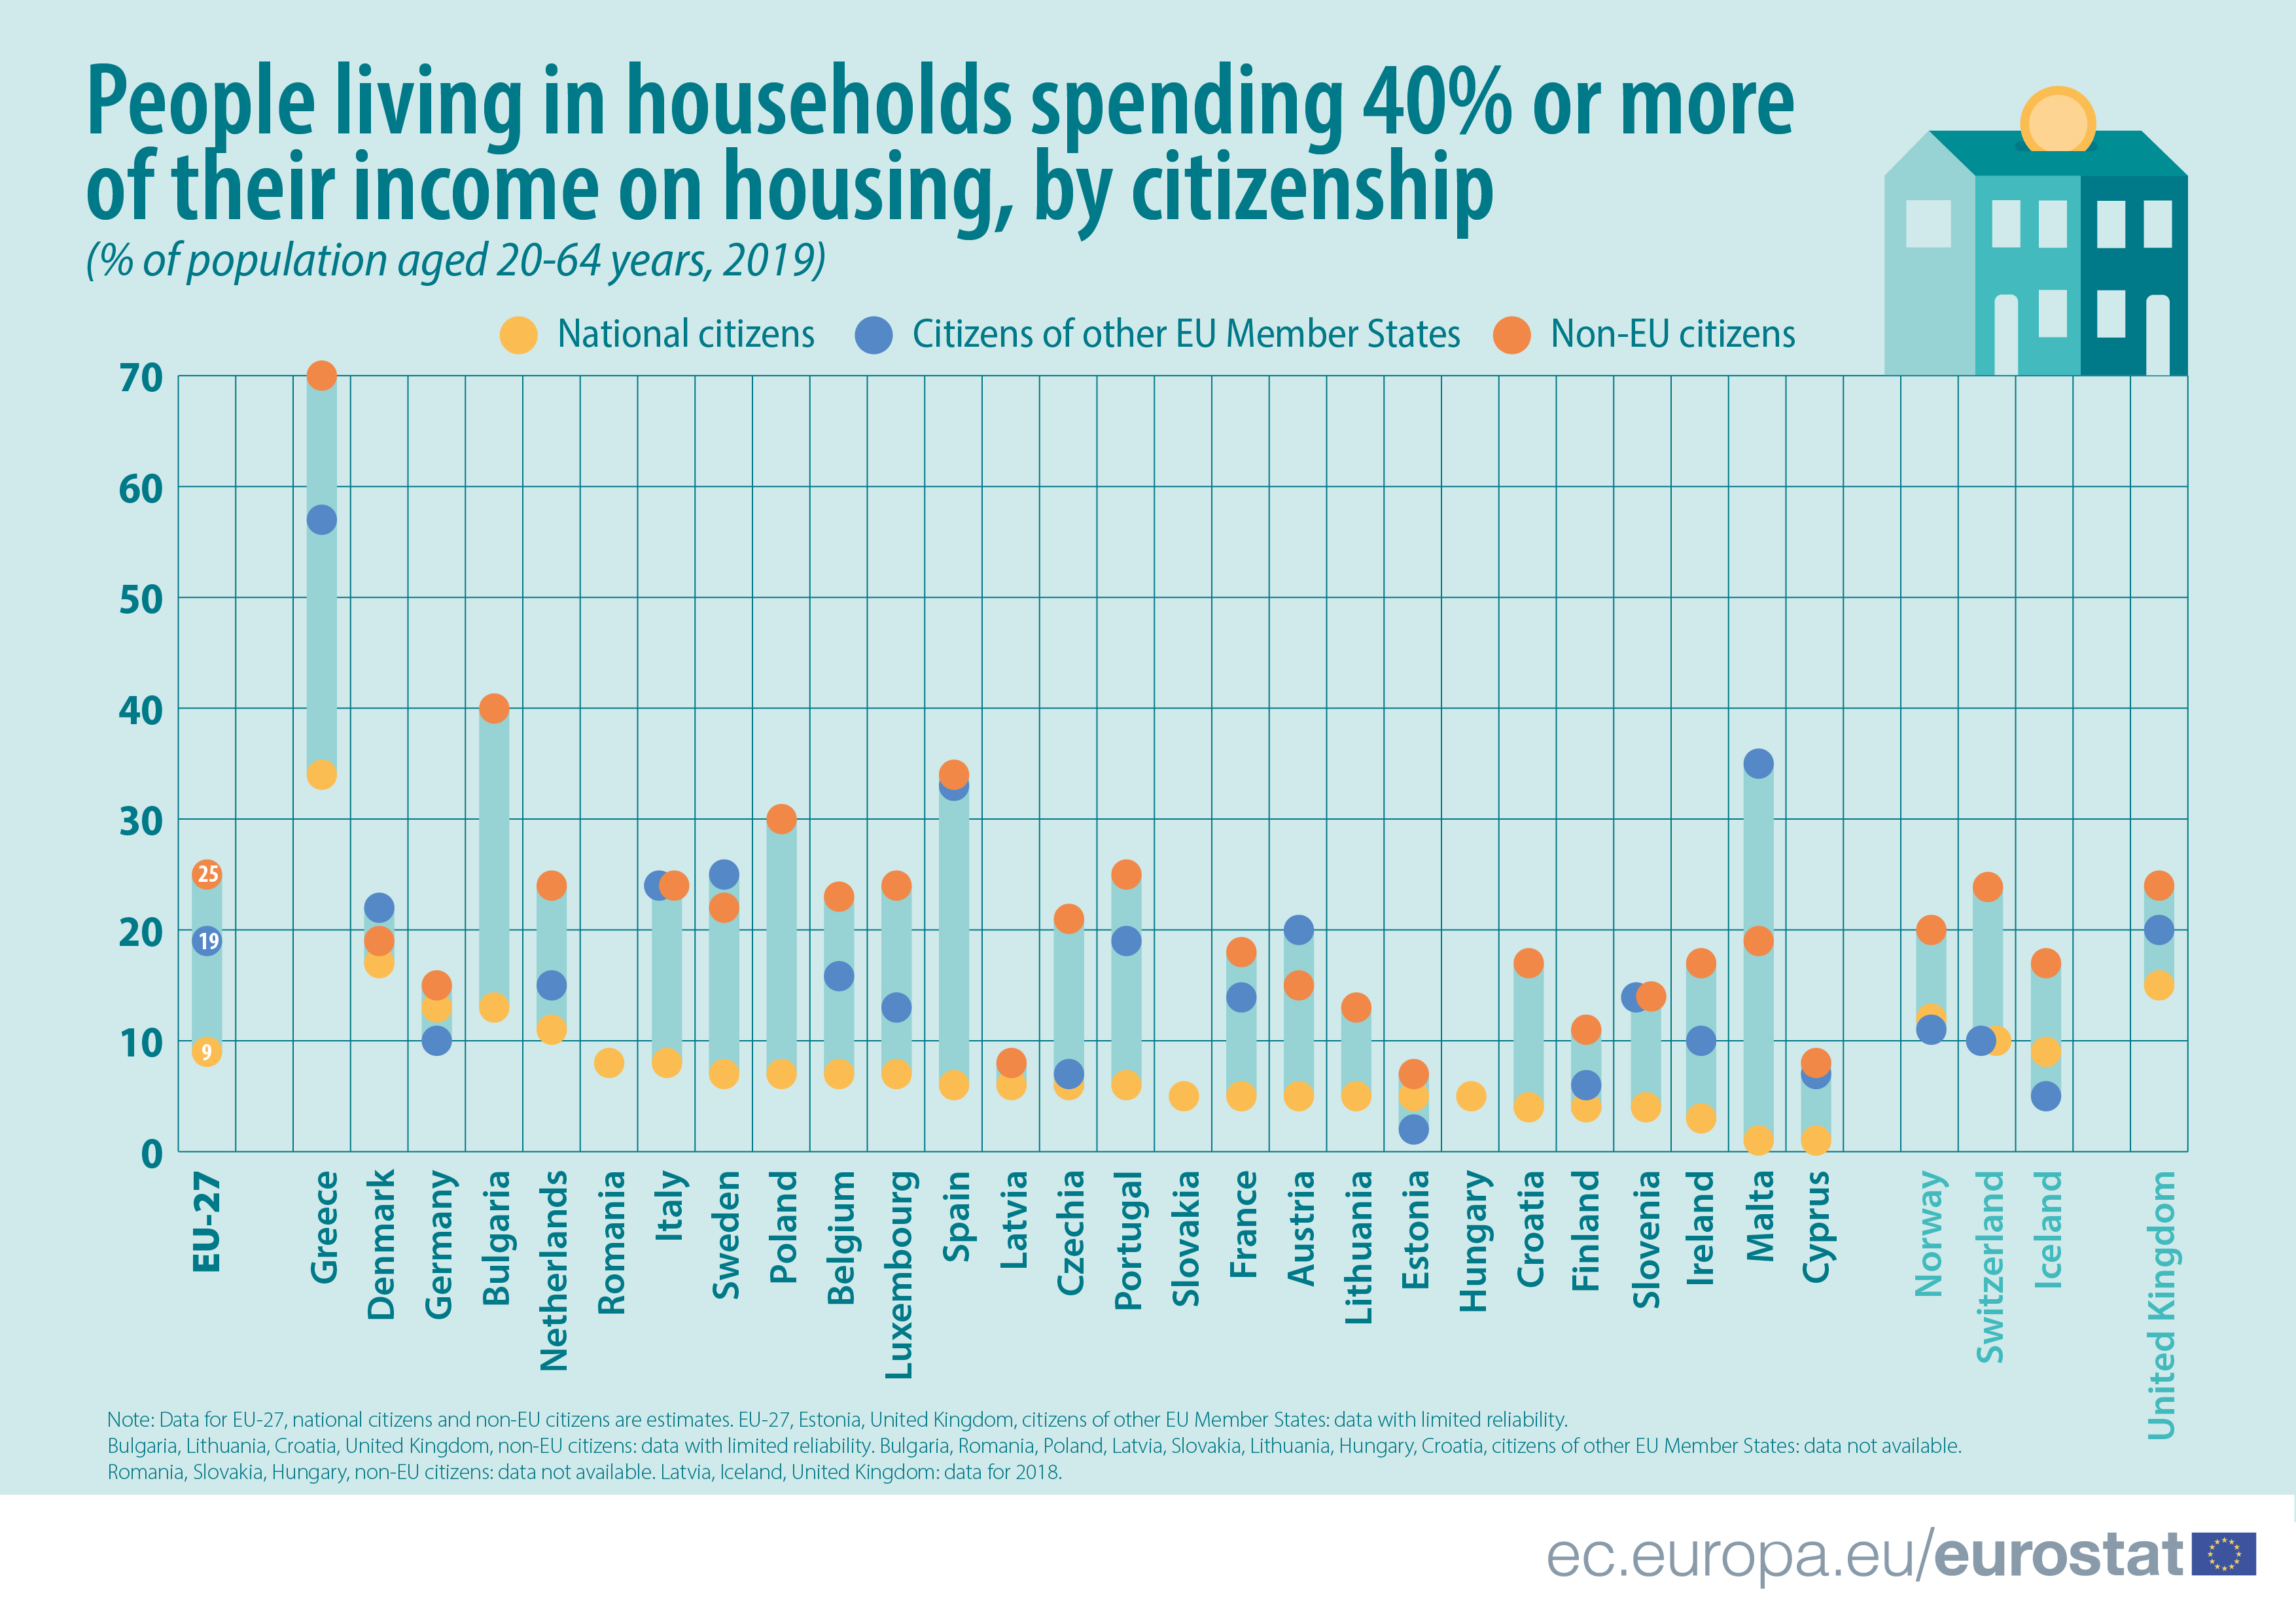 Bar chart showing housing cost overburden rate for different nationalities per EU member state, 2019 data